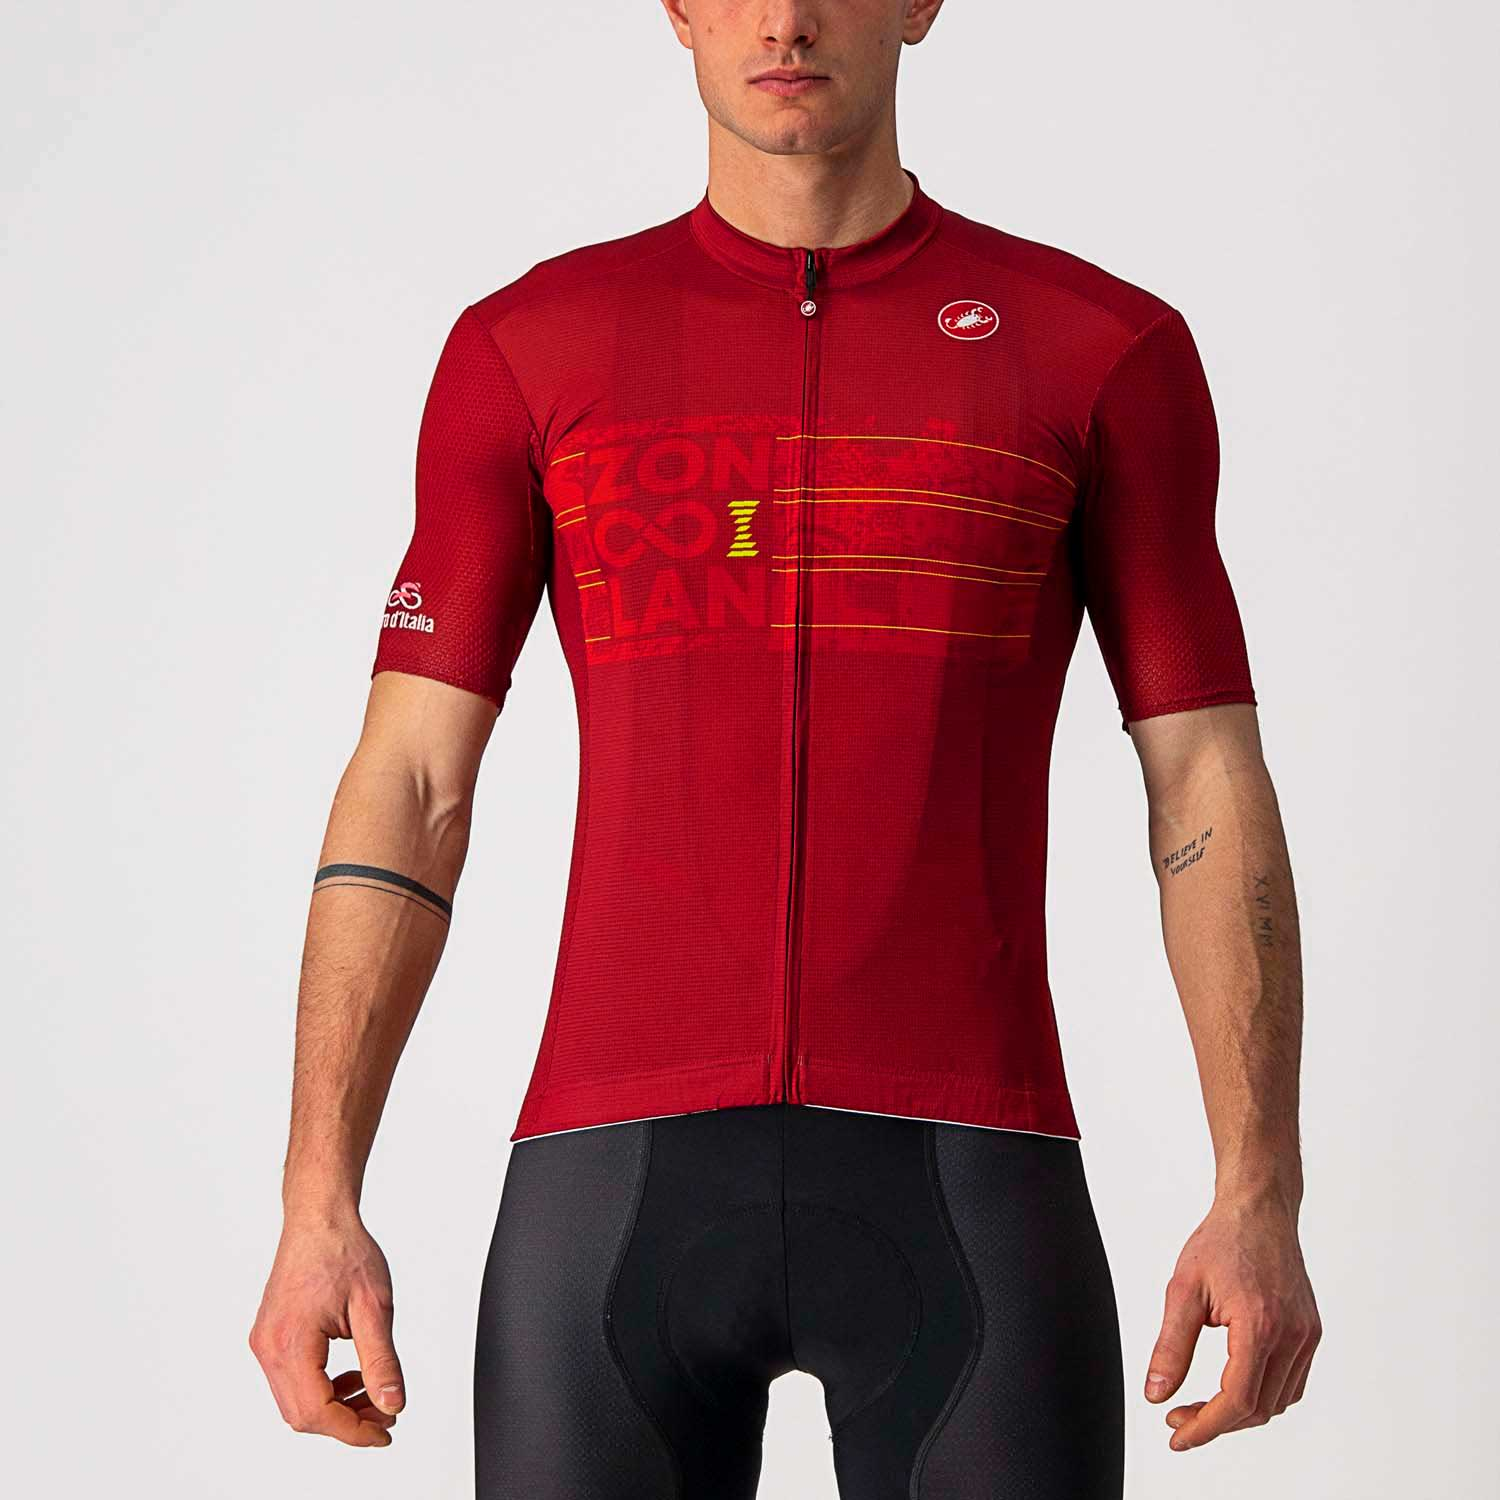 Castelli-Castelli Zoncolan Jersey-Garnet Red/Electric Lime-S-CS95104110402-saddleback-elite-performance-cycling